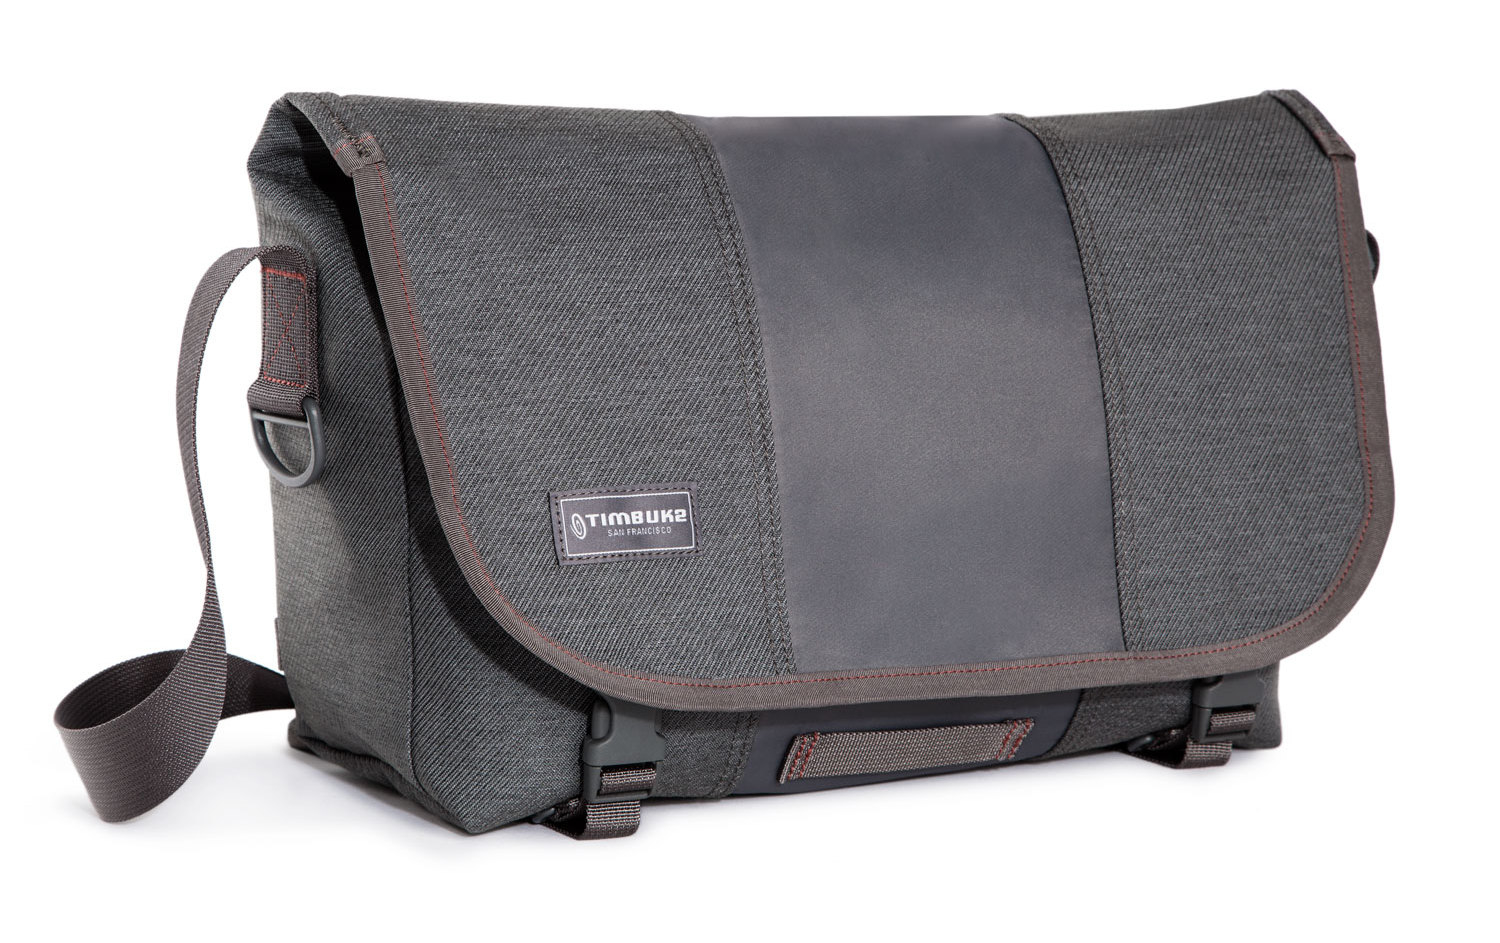 Timbuk2 classic messenger bag review